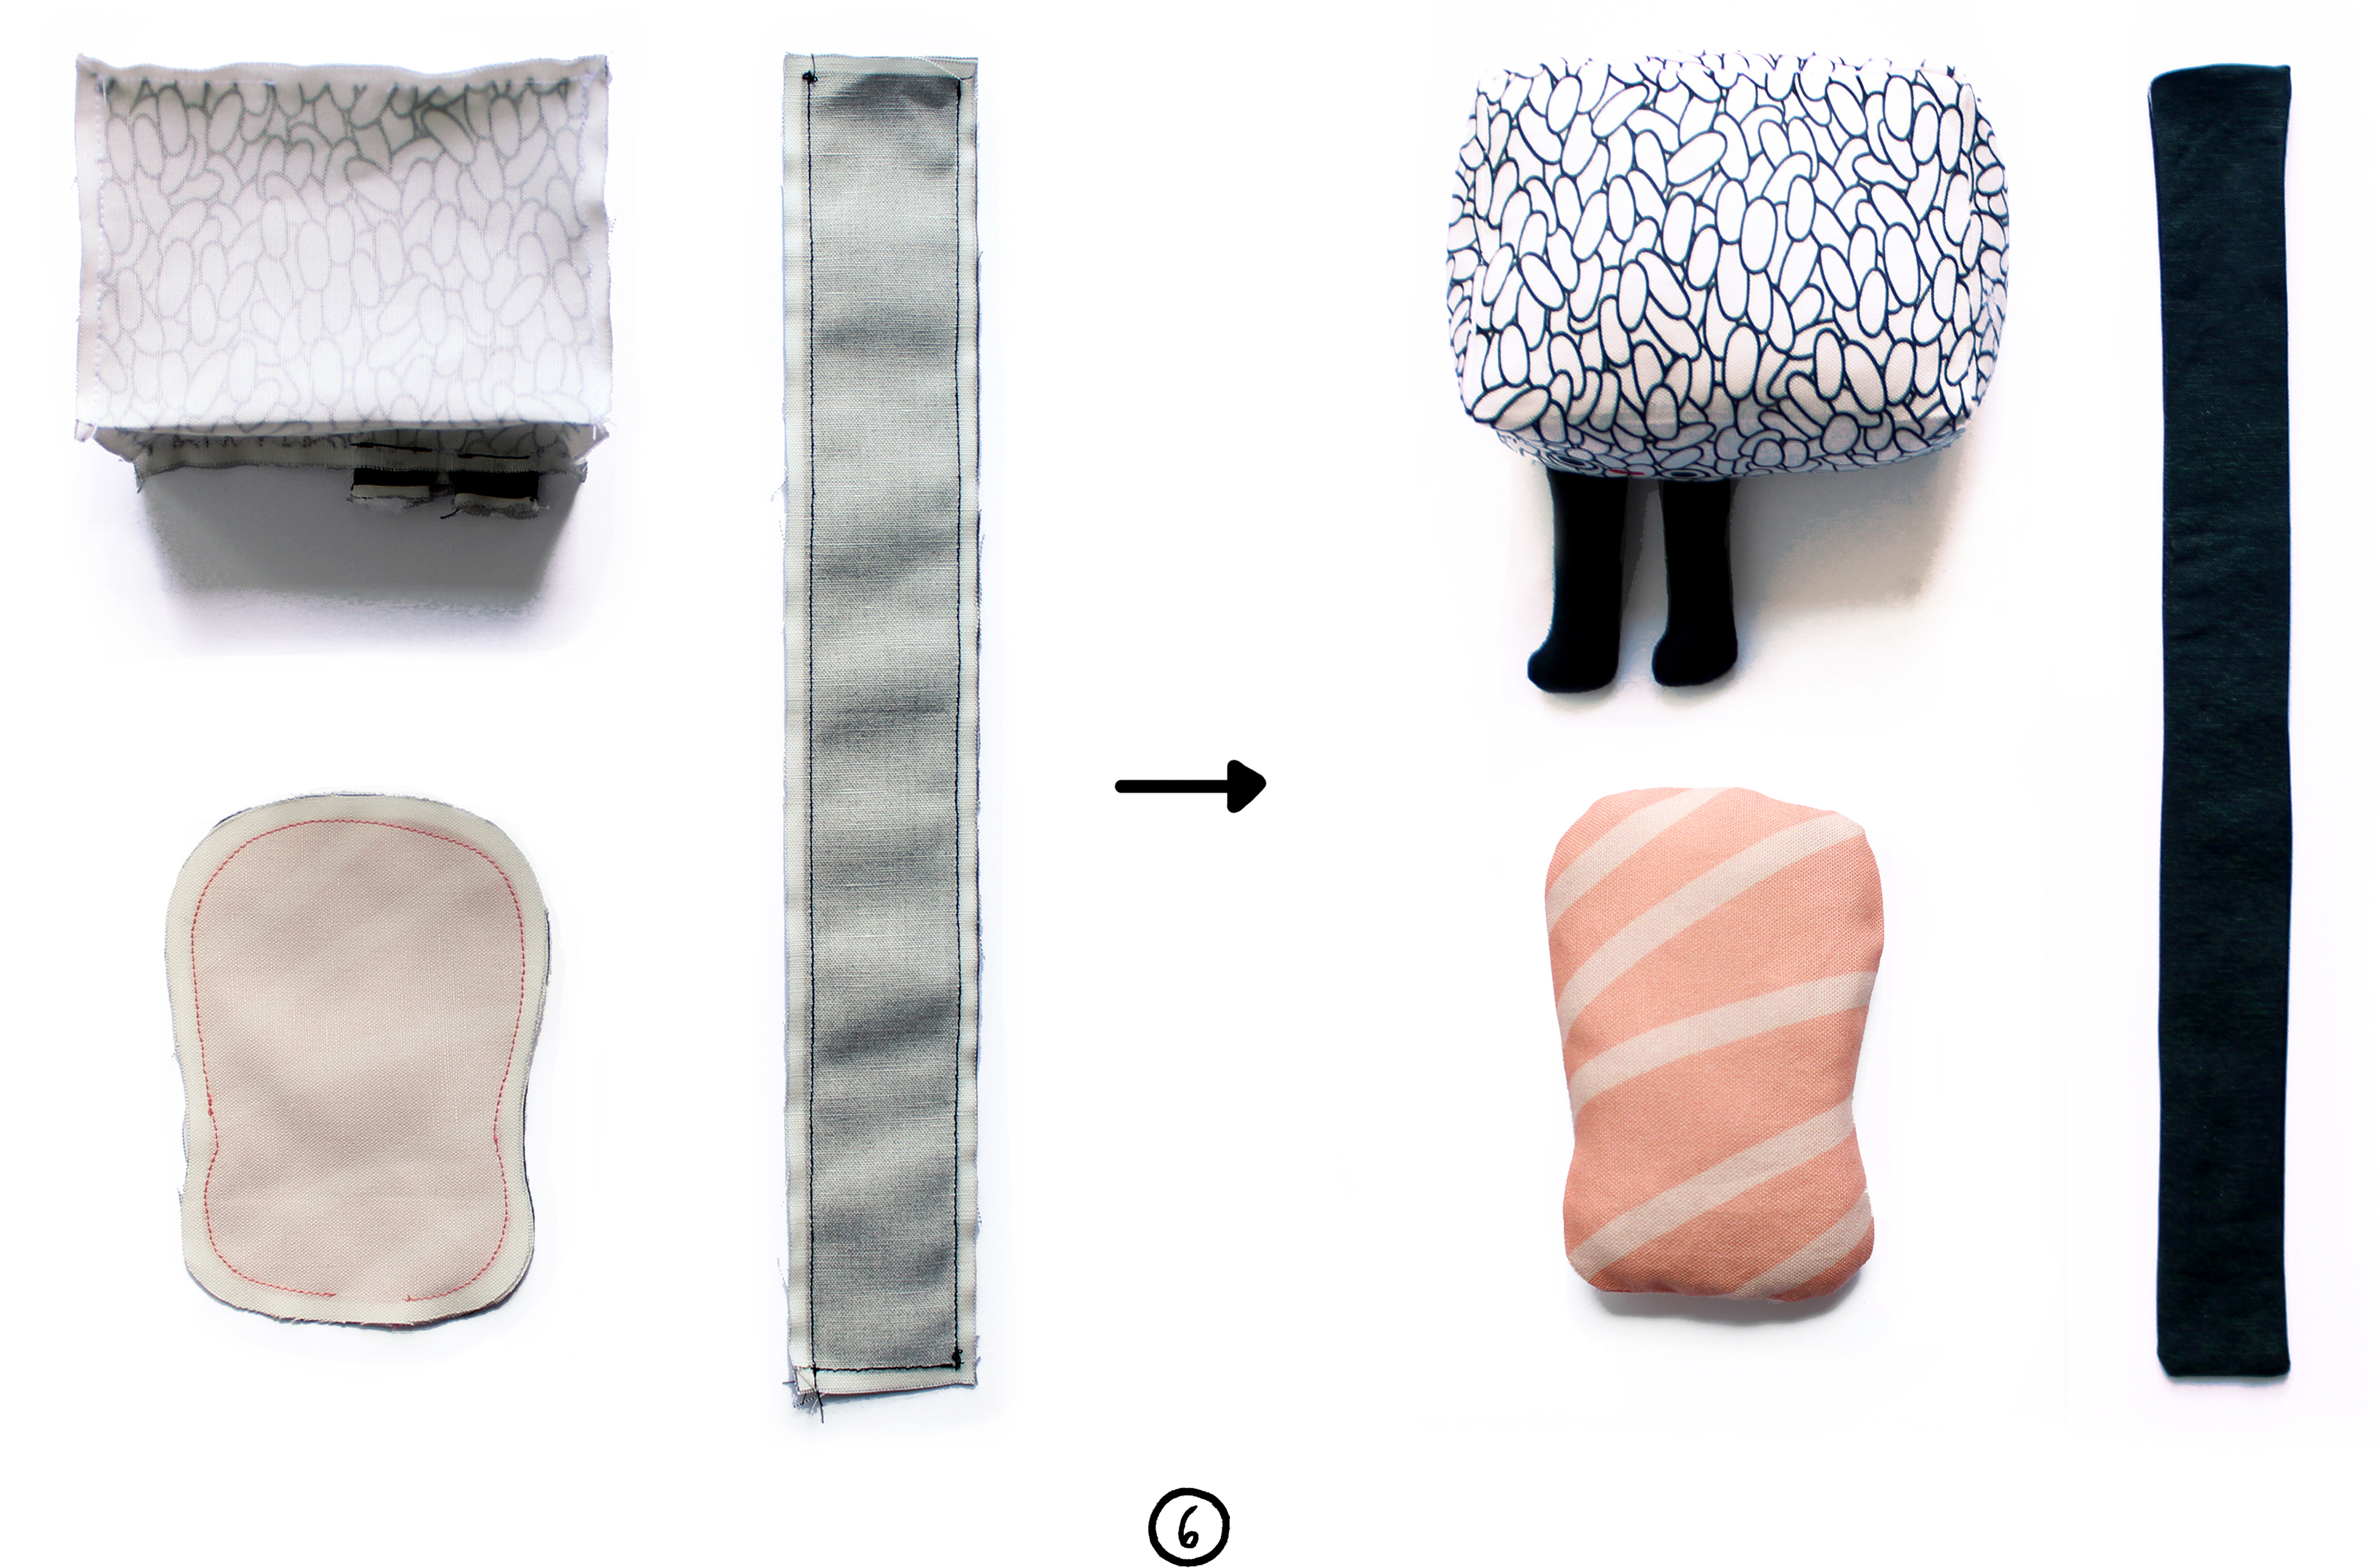 Sew your seaweed and salmon pieces together | Spoonflower Blog